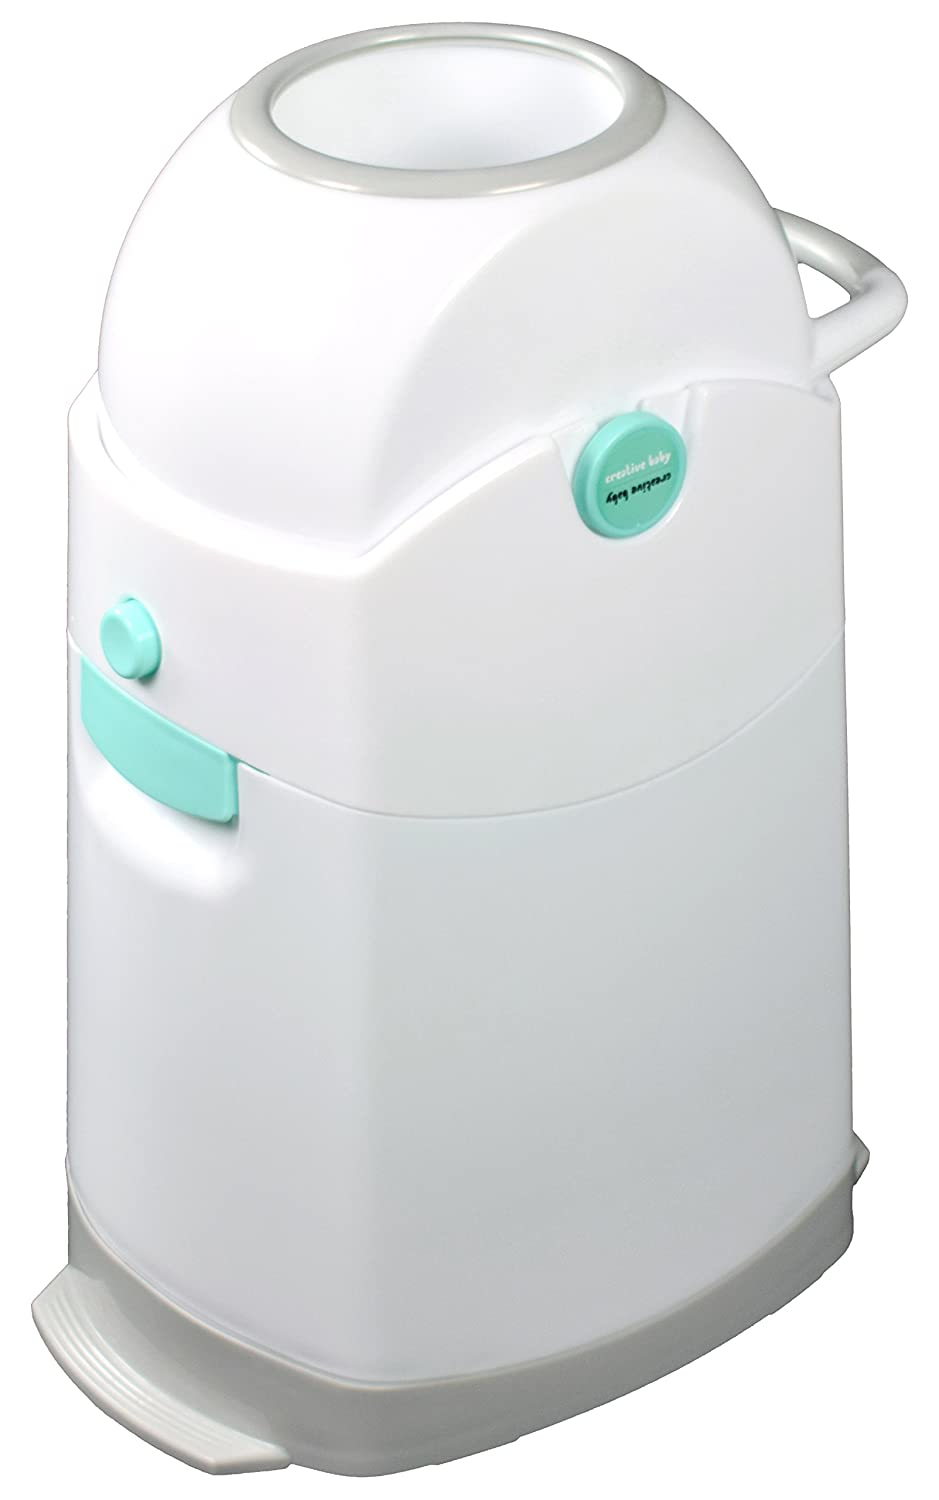 Top 10 Best Diaper Pails (2020 Reviews & Buying Guide) 10